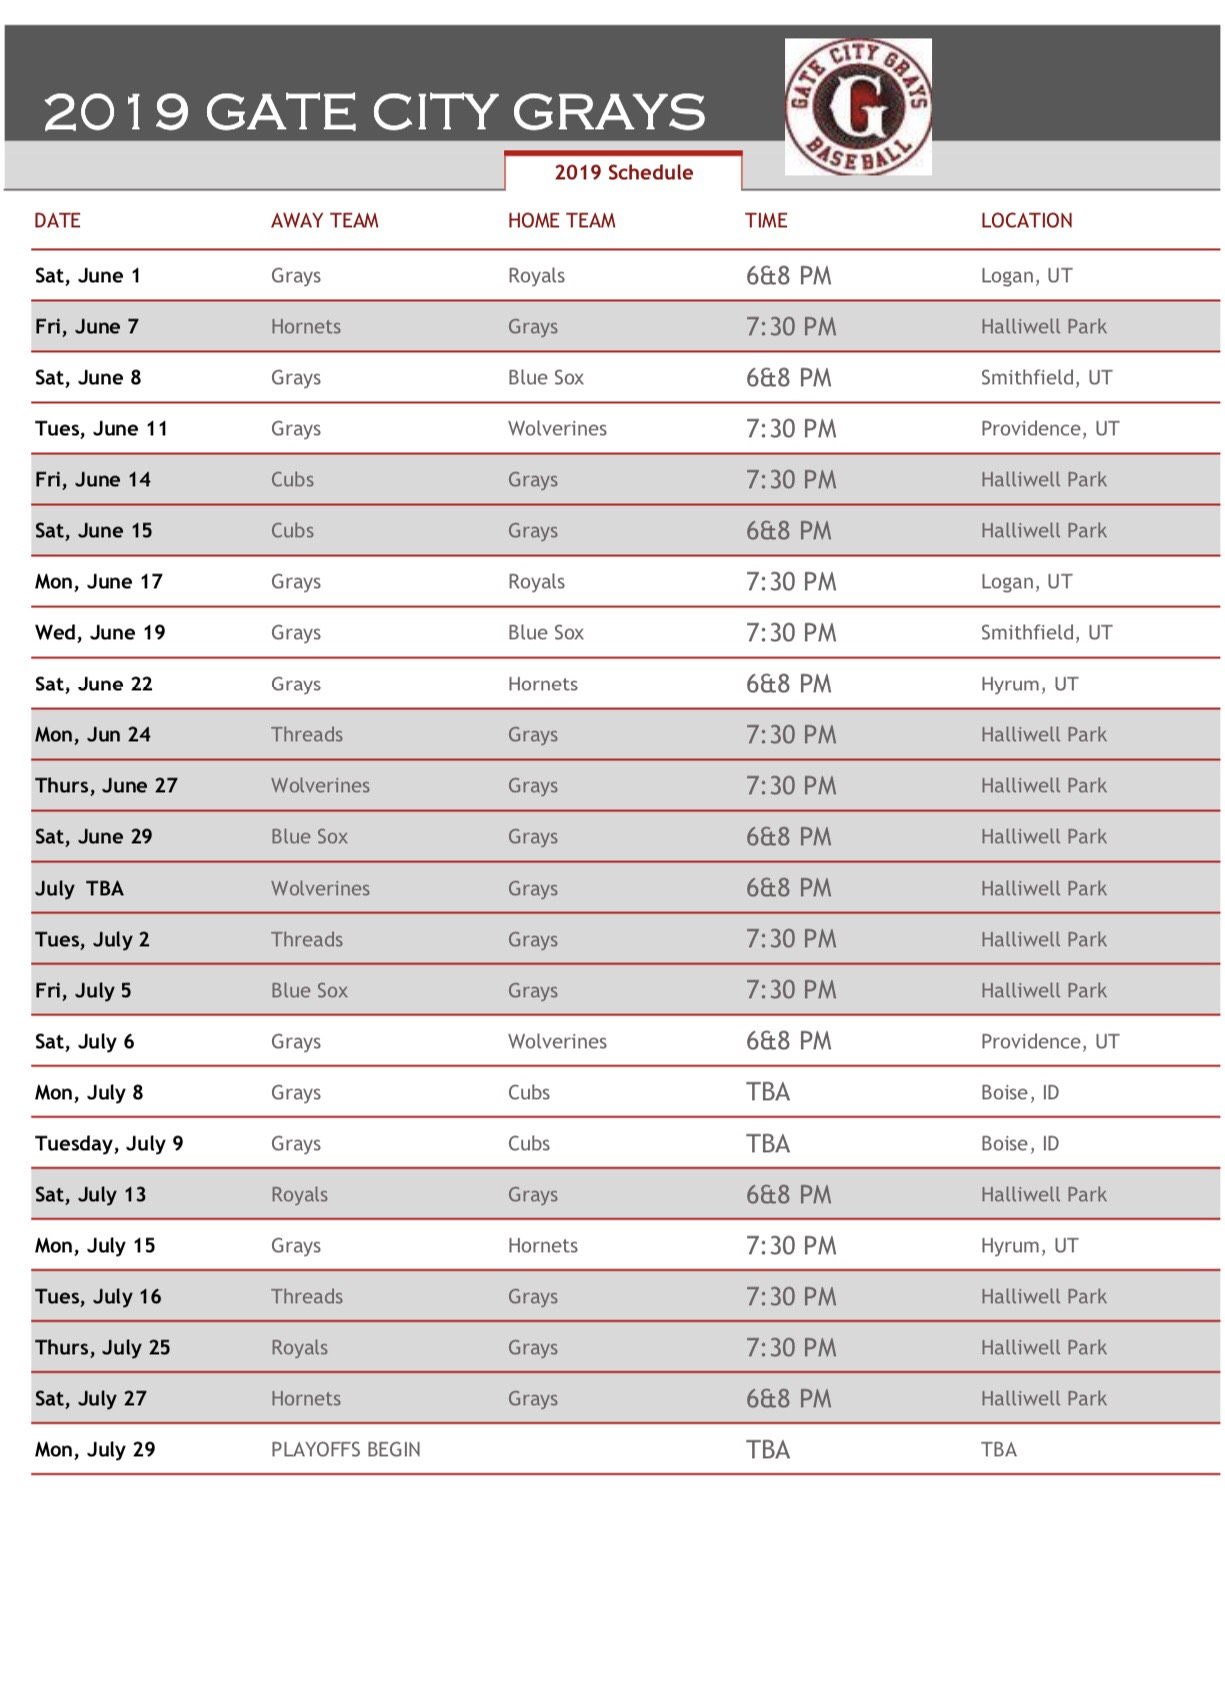 2019 Grays Schedule